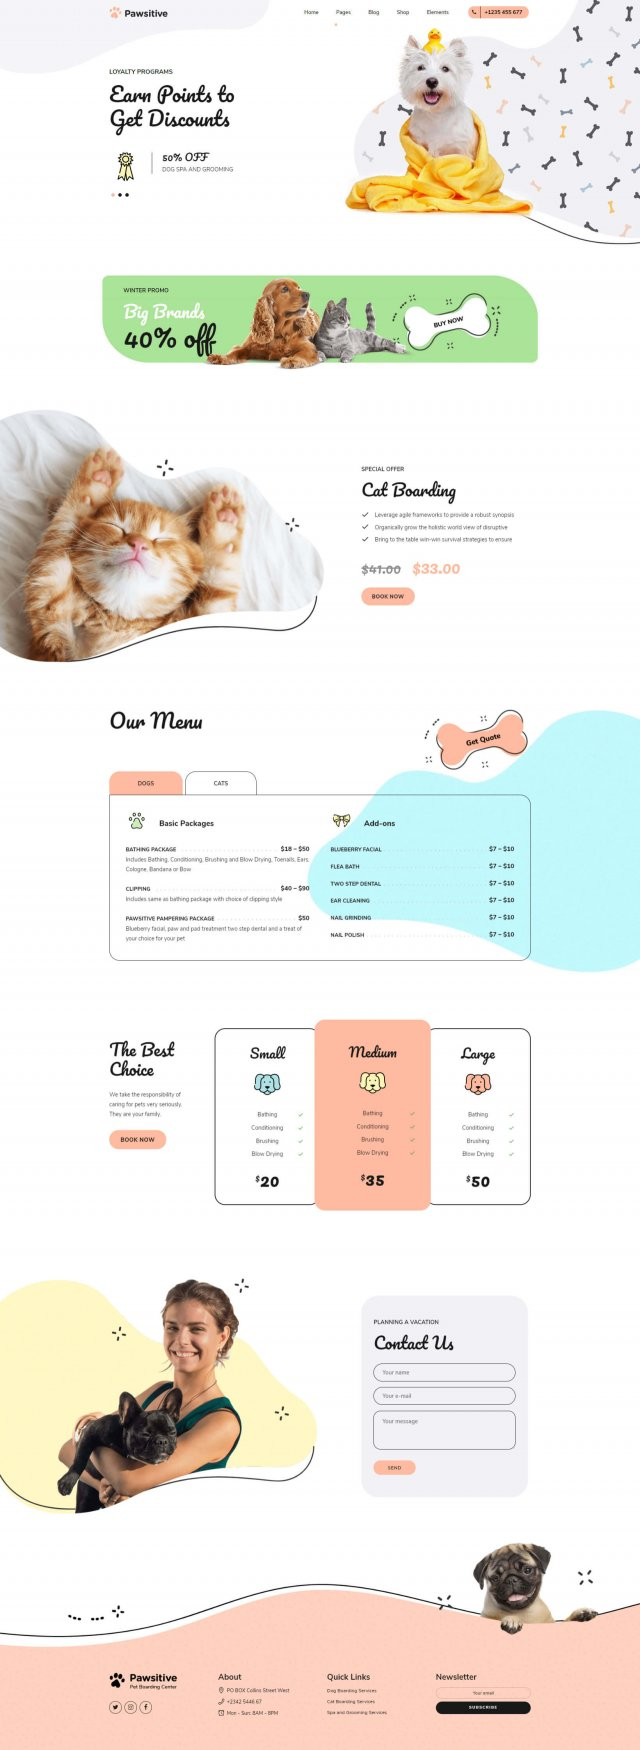 http://pawsitive.bold-themes.com/wp-content/uploads/2019/09/Coco-Prices-640x1750.jpg